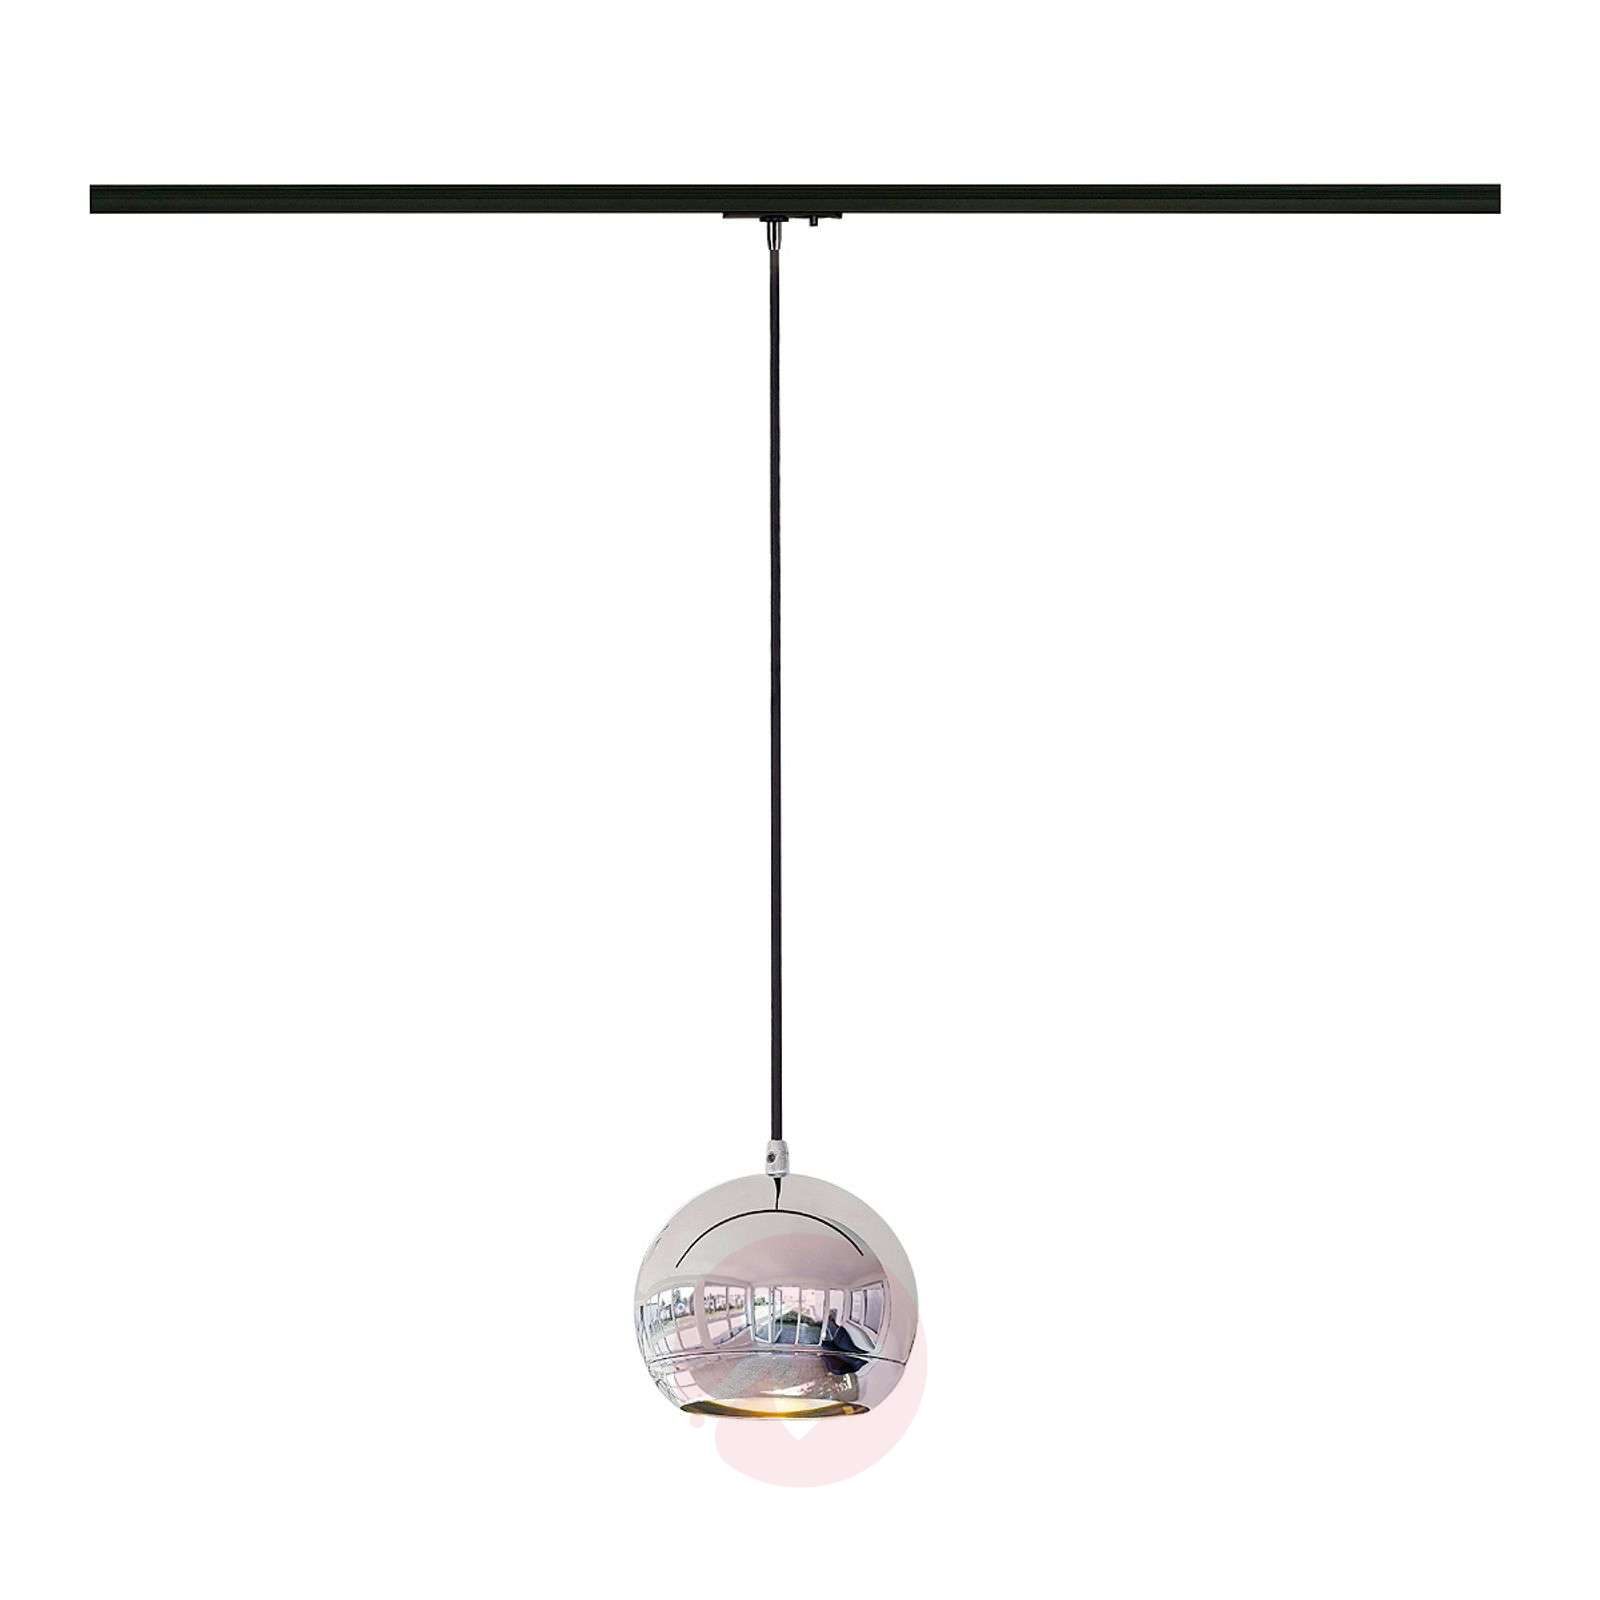 Chrome And Black Track Lighting: Light Eye Chrome Pendant Light For Track Lighting